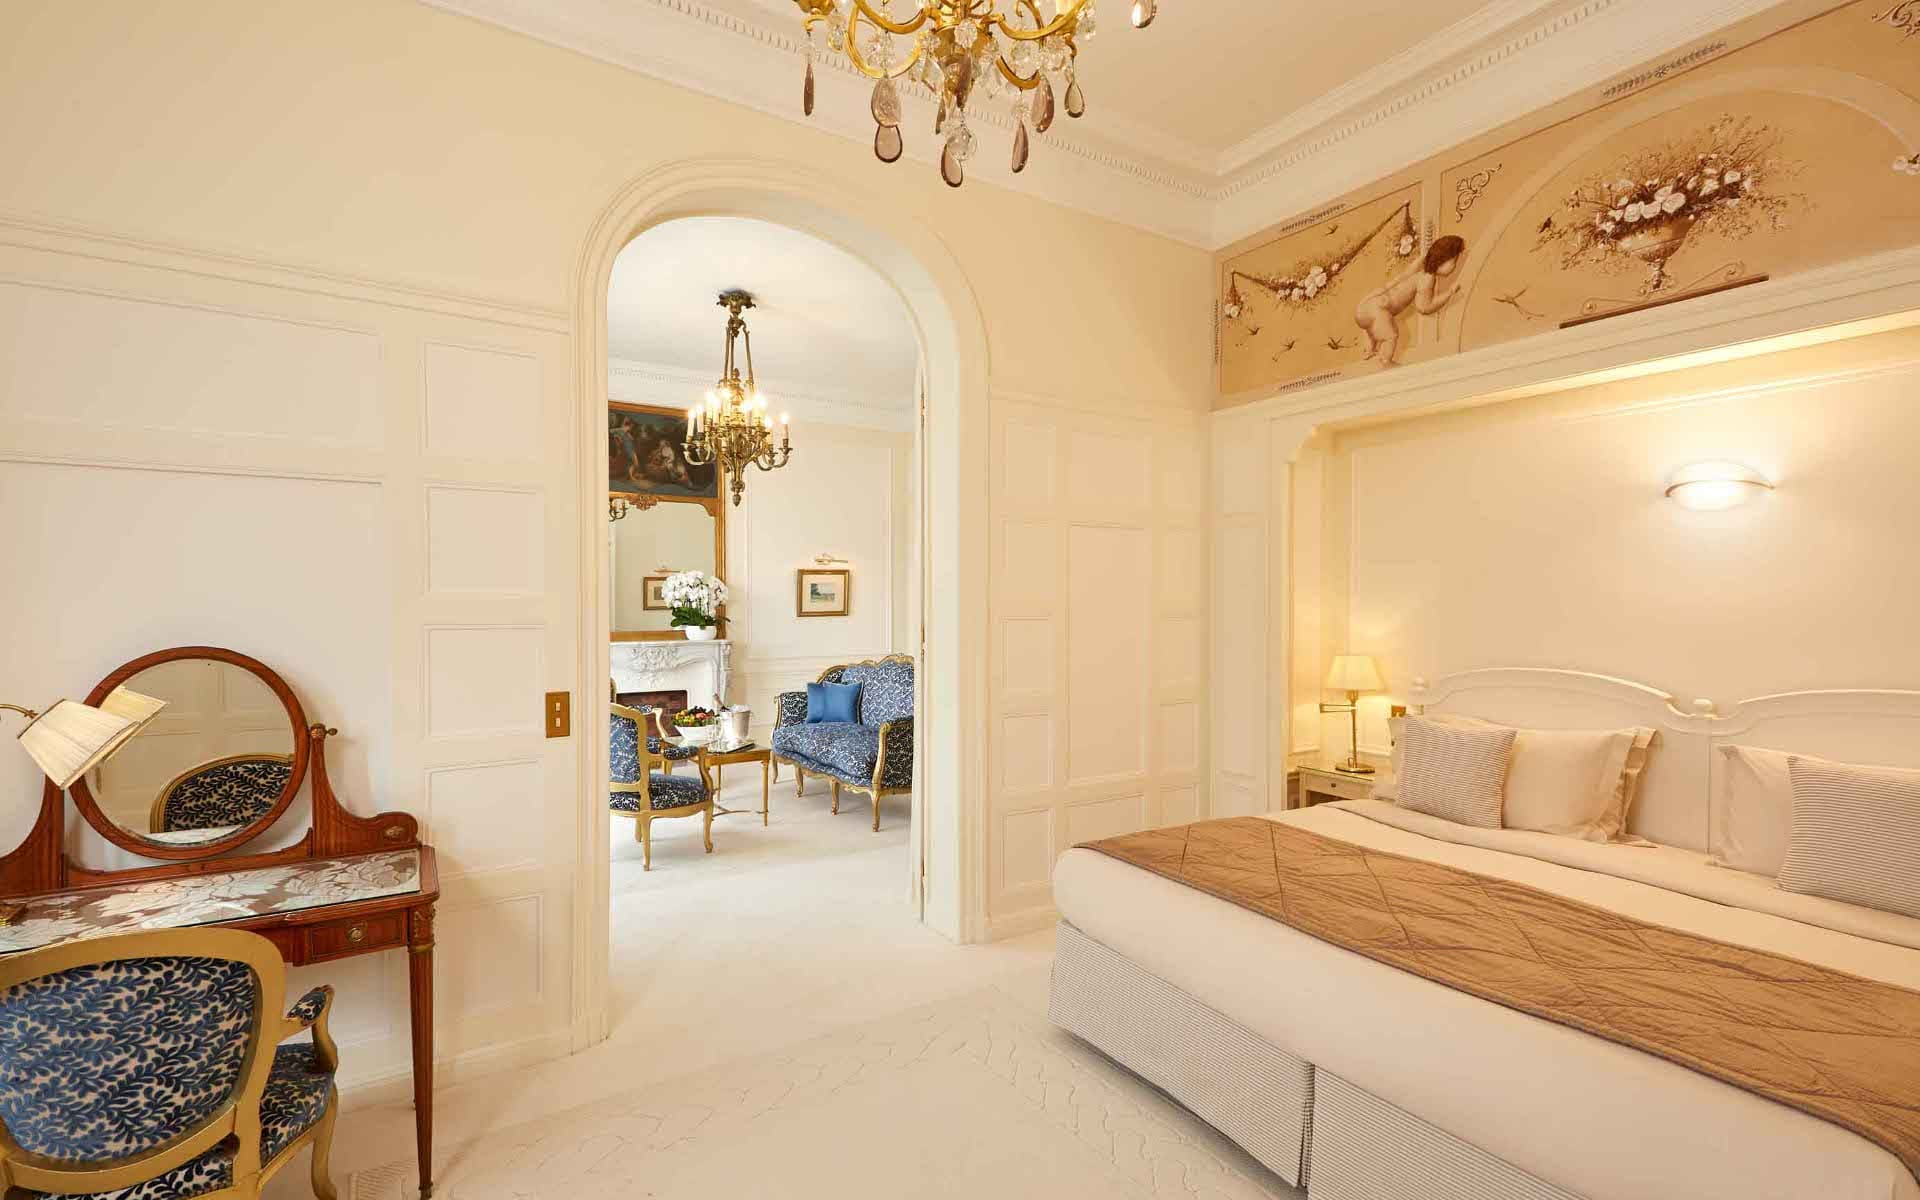 Hotel Raphael Paris Arc de triomphe terrace suite